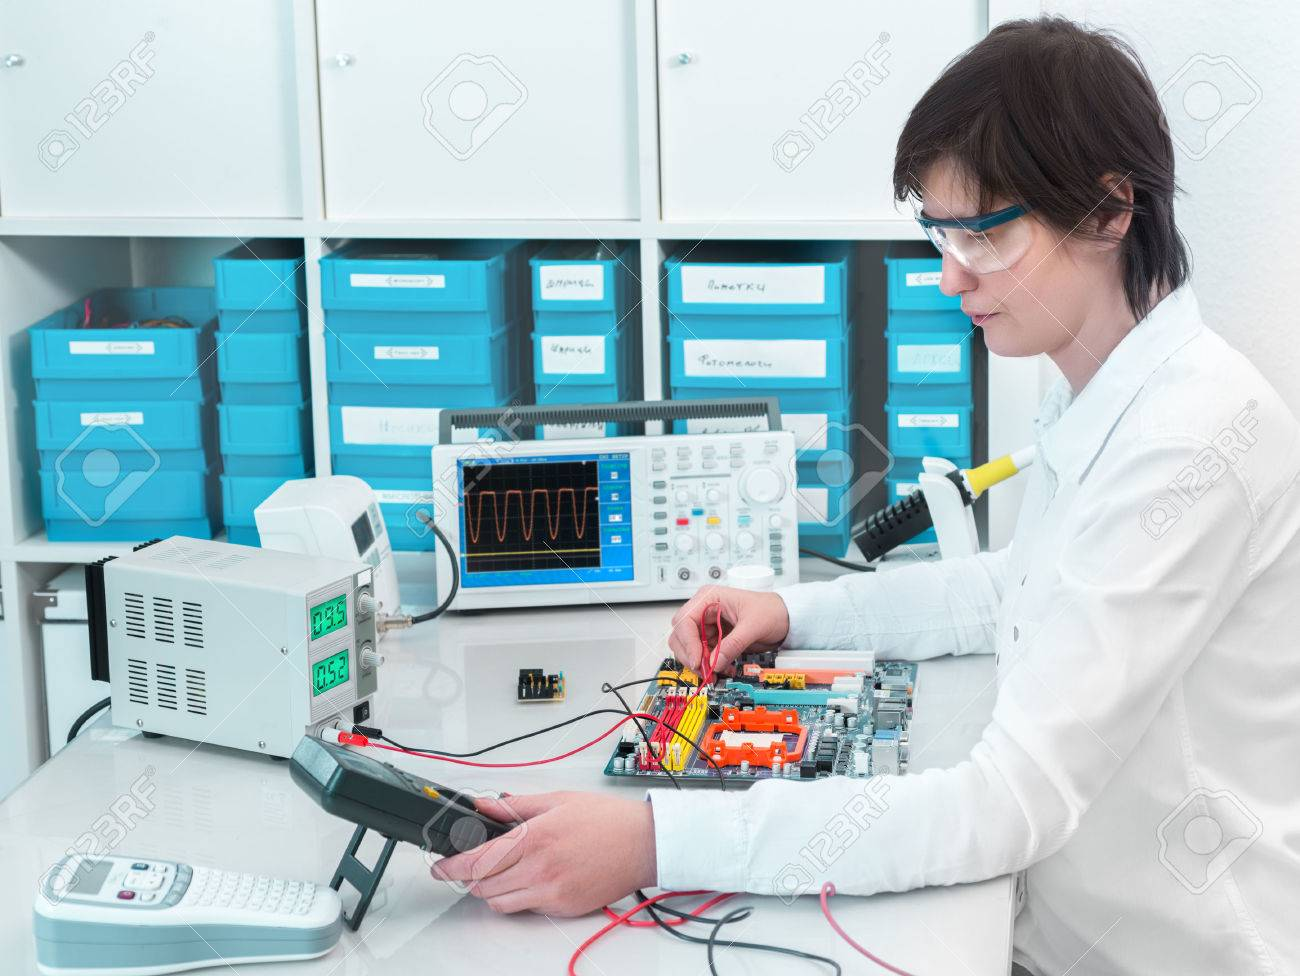 Tech tests electronic equipment in service center - 31077159